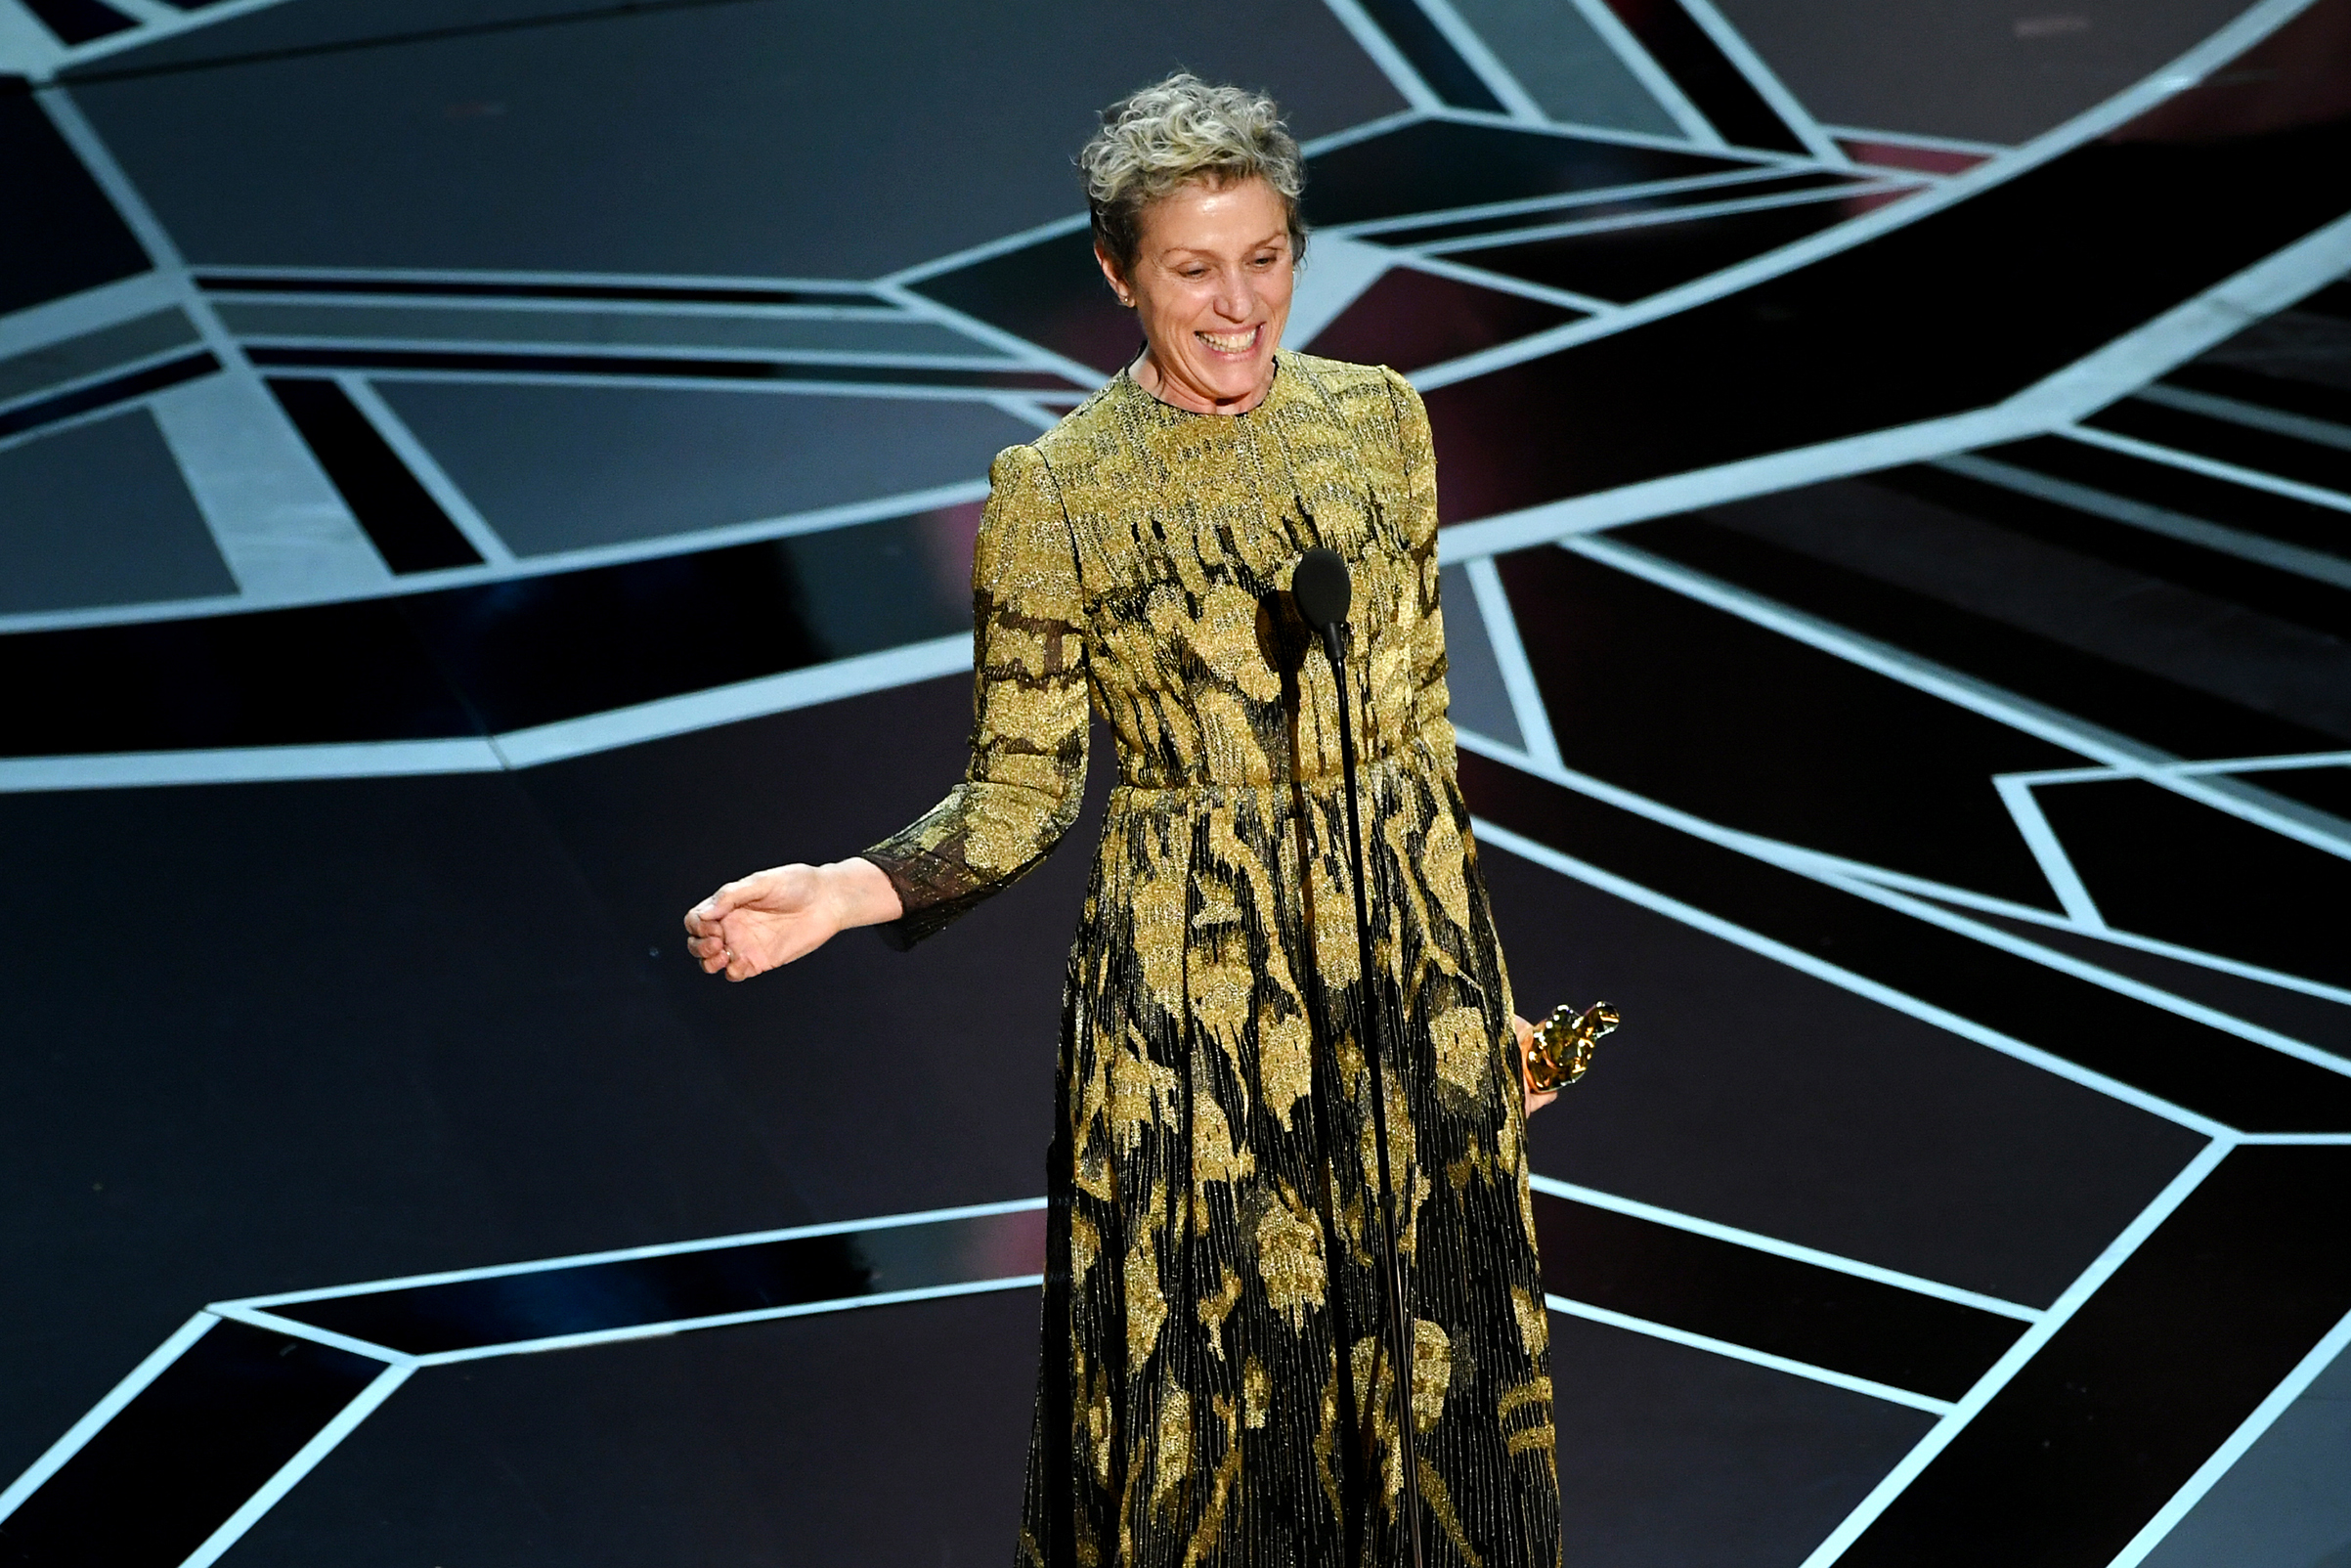 Actor Frances McDormand accepts Best Actress for 'Three Billboards Outside Ebbing, Missouri' onstage during the 90th Annual Academy Awards at the Dolby Theatre at Hollywood & Highland Center on March 4, 2018 in Hollywood.